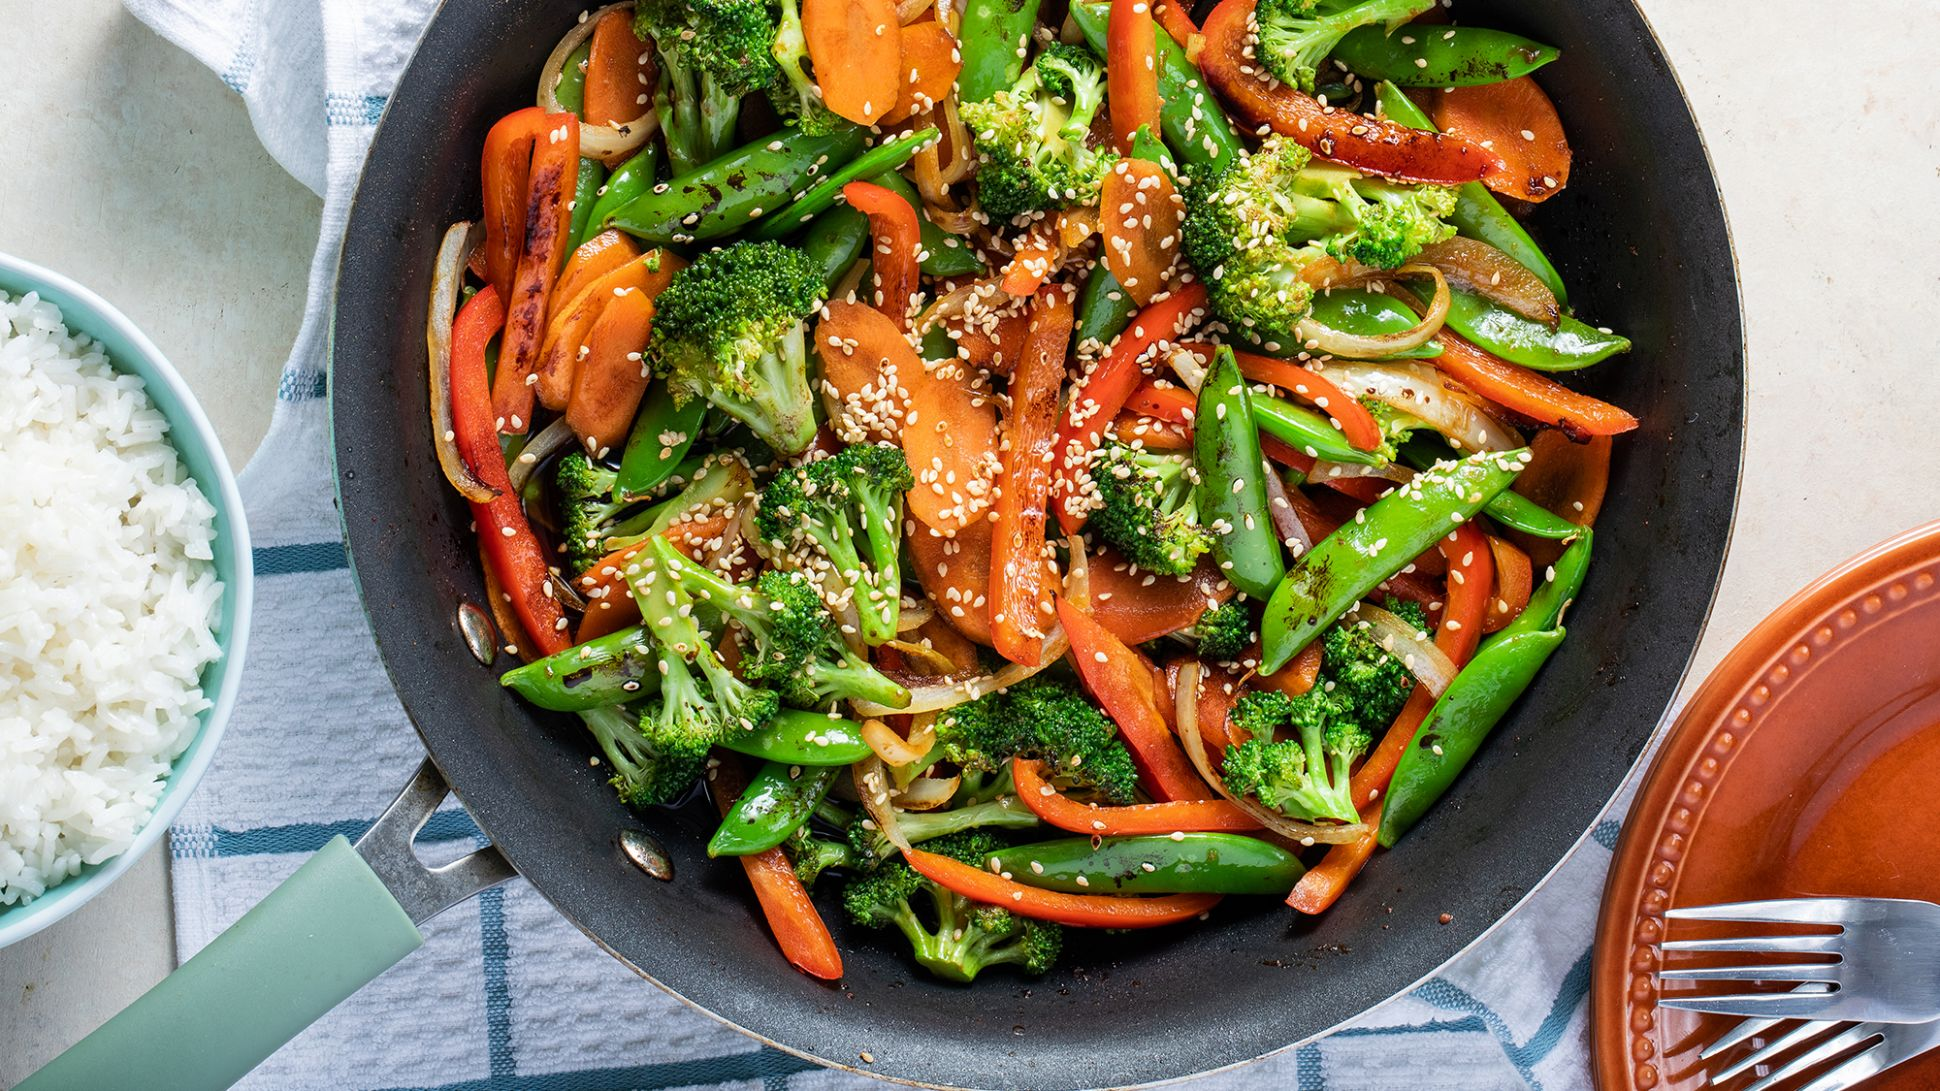 Vegetable Stir Fry Recipe | McCormick - Recipes Of Vegetable Dishes